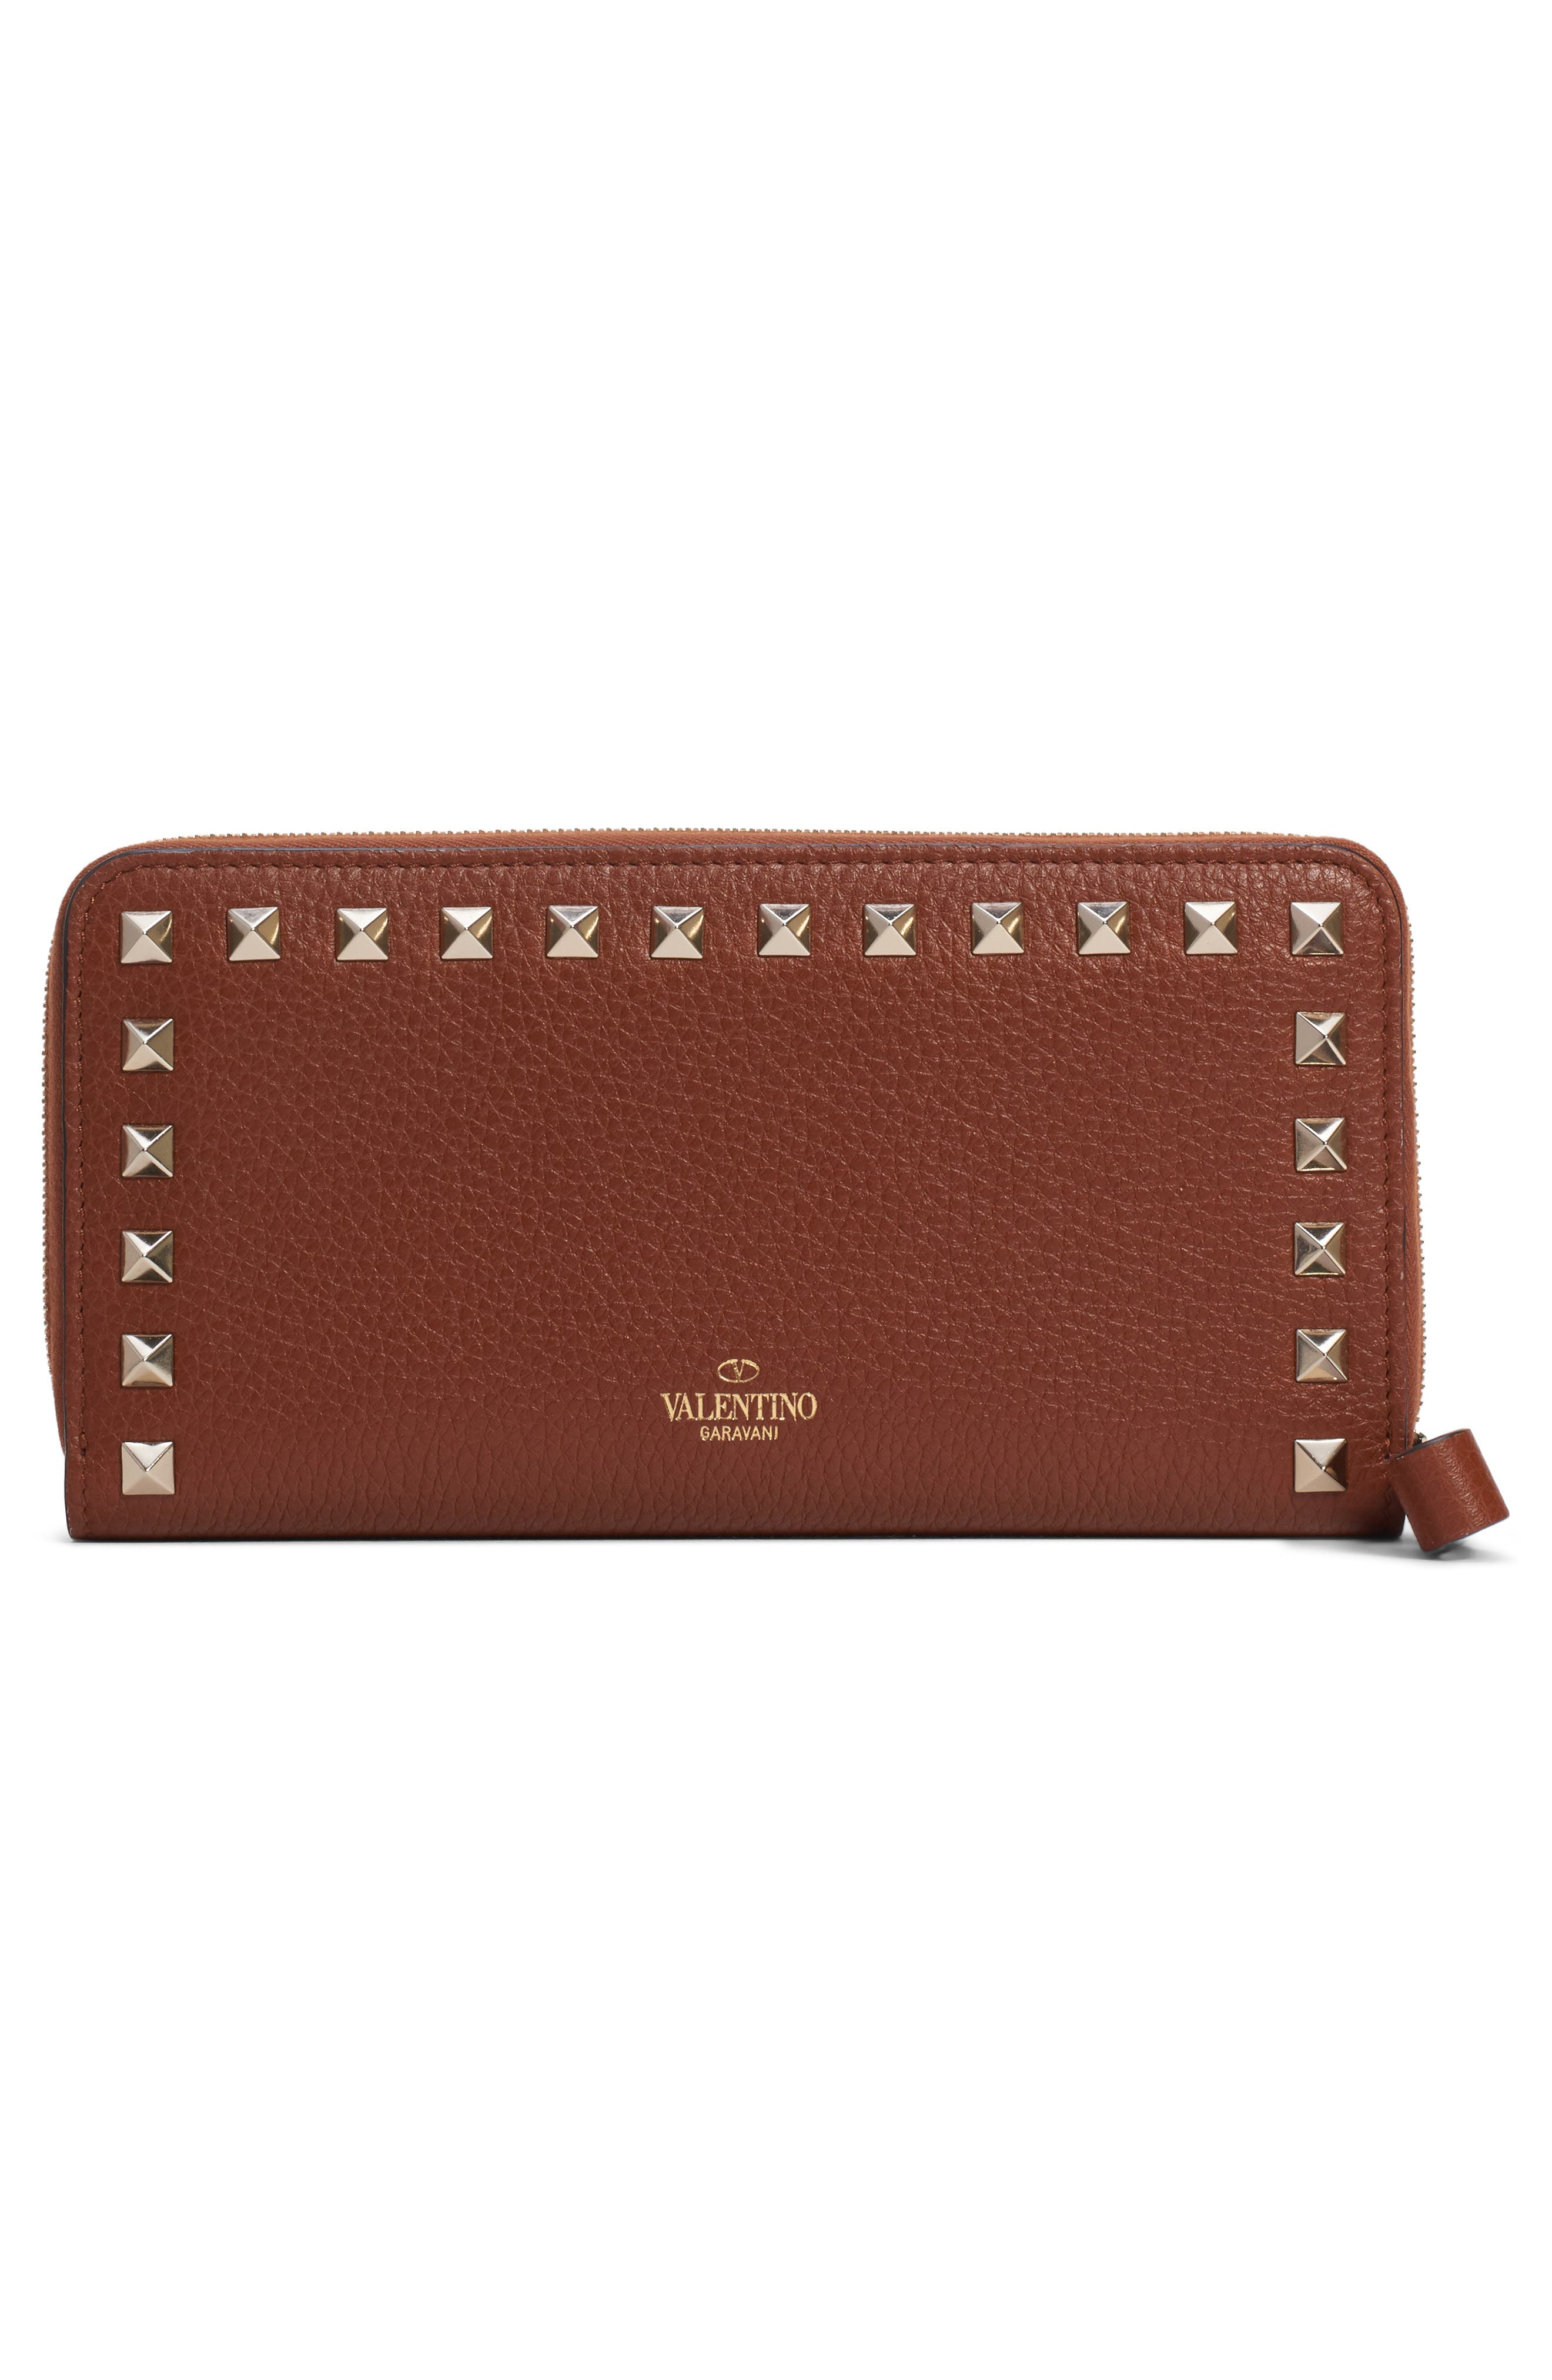 f42a155697 VALENTINO GARAVANI Wallets & Card Cases for Women | Nordstrom